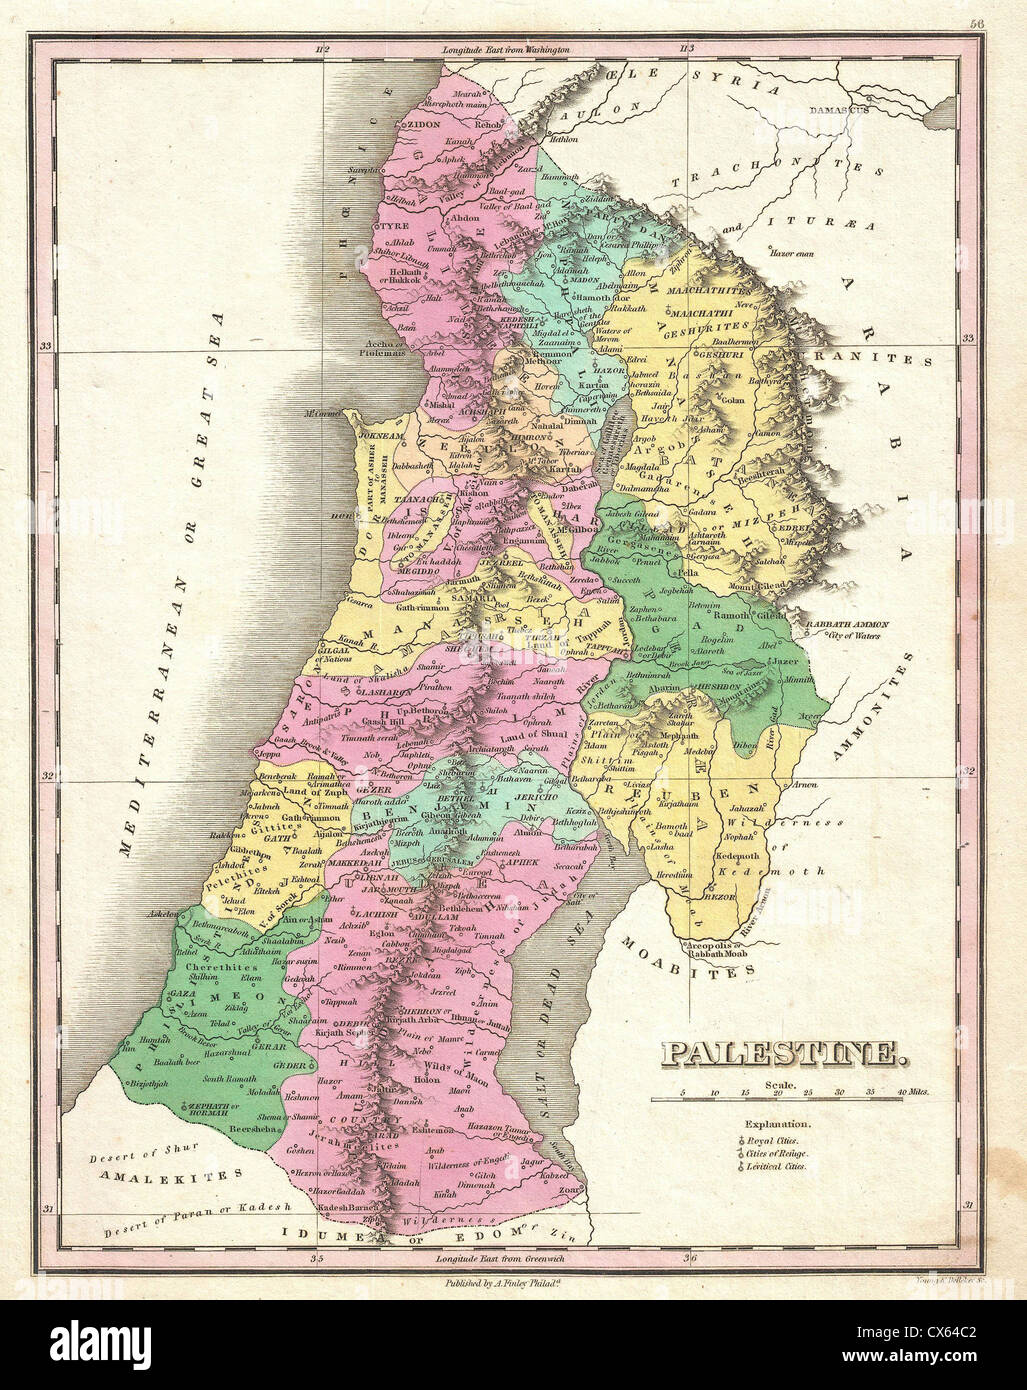 1827 finley map of israel palestine holy land stock photo 1827 finley map of israel palestine holy land gumiabroncs Gallery